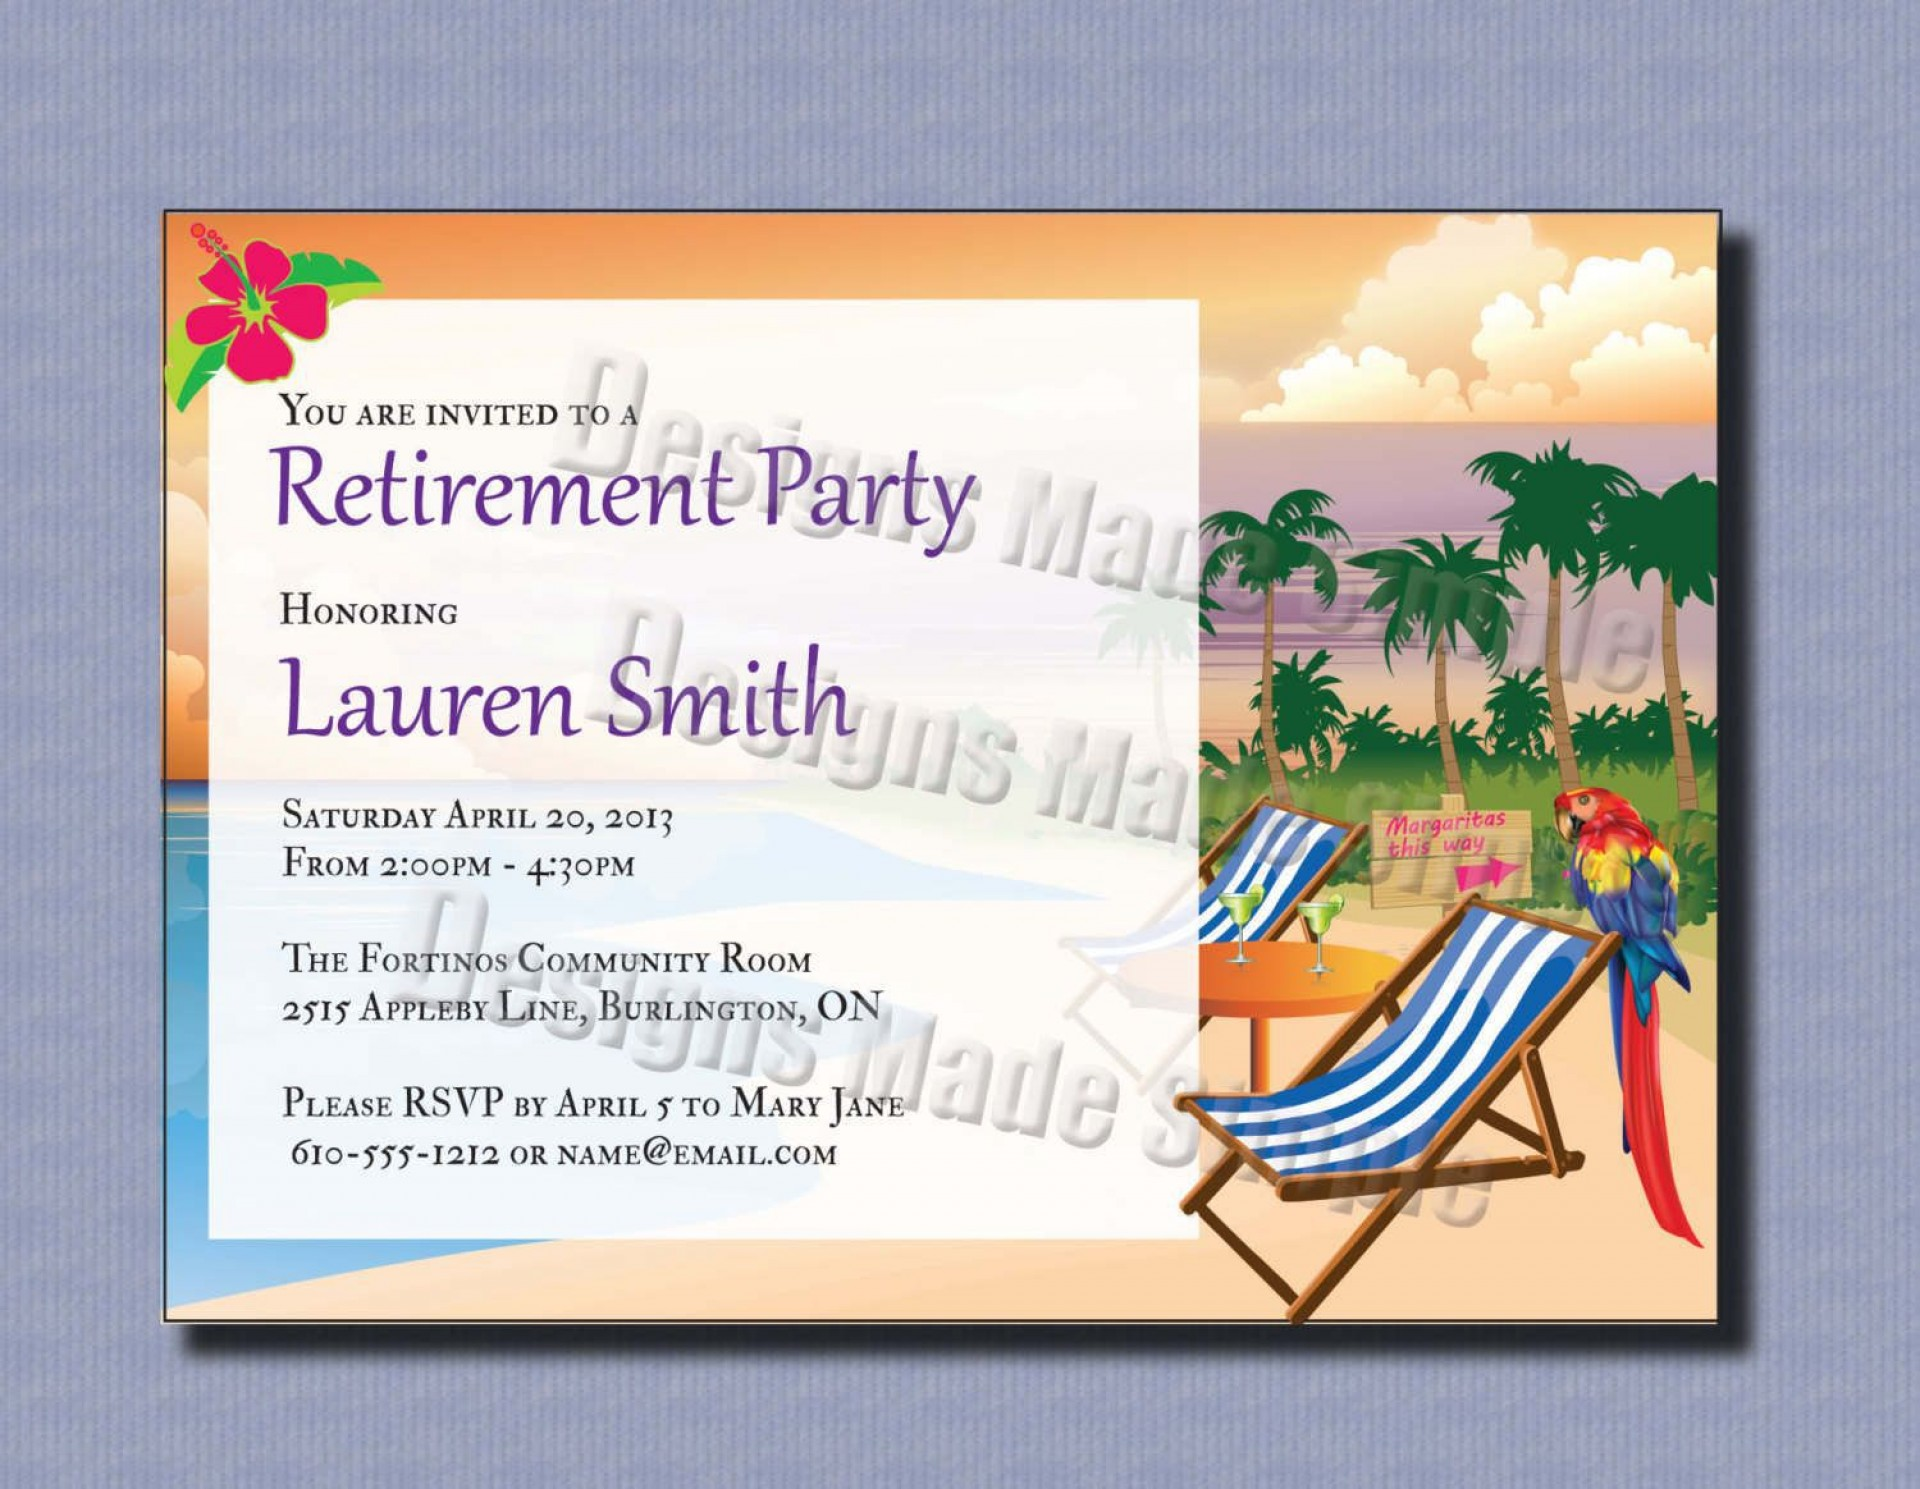 000 Outstanding Free Retirement Invitation Template High Definition  Templates Microsoft Word Party Flyer1920